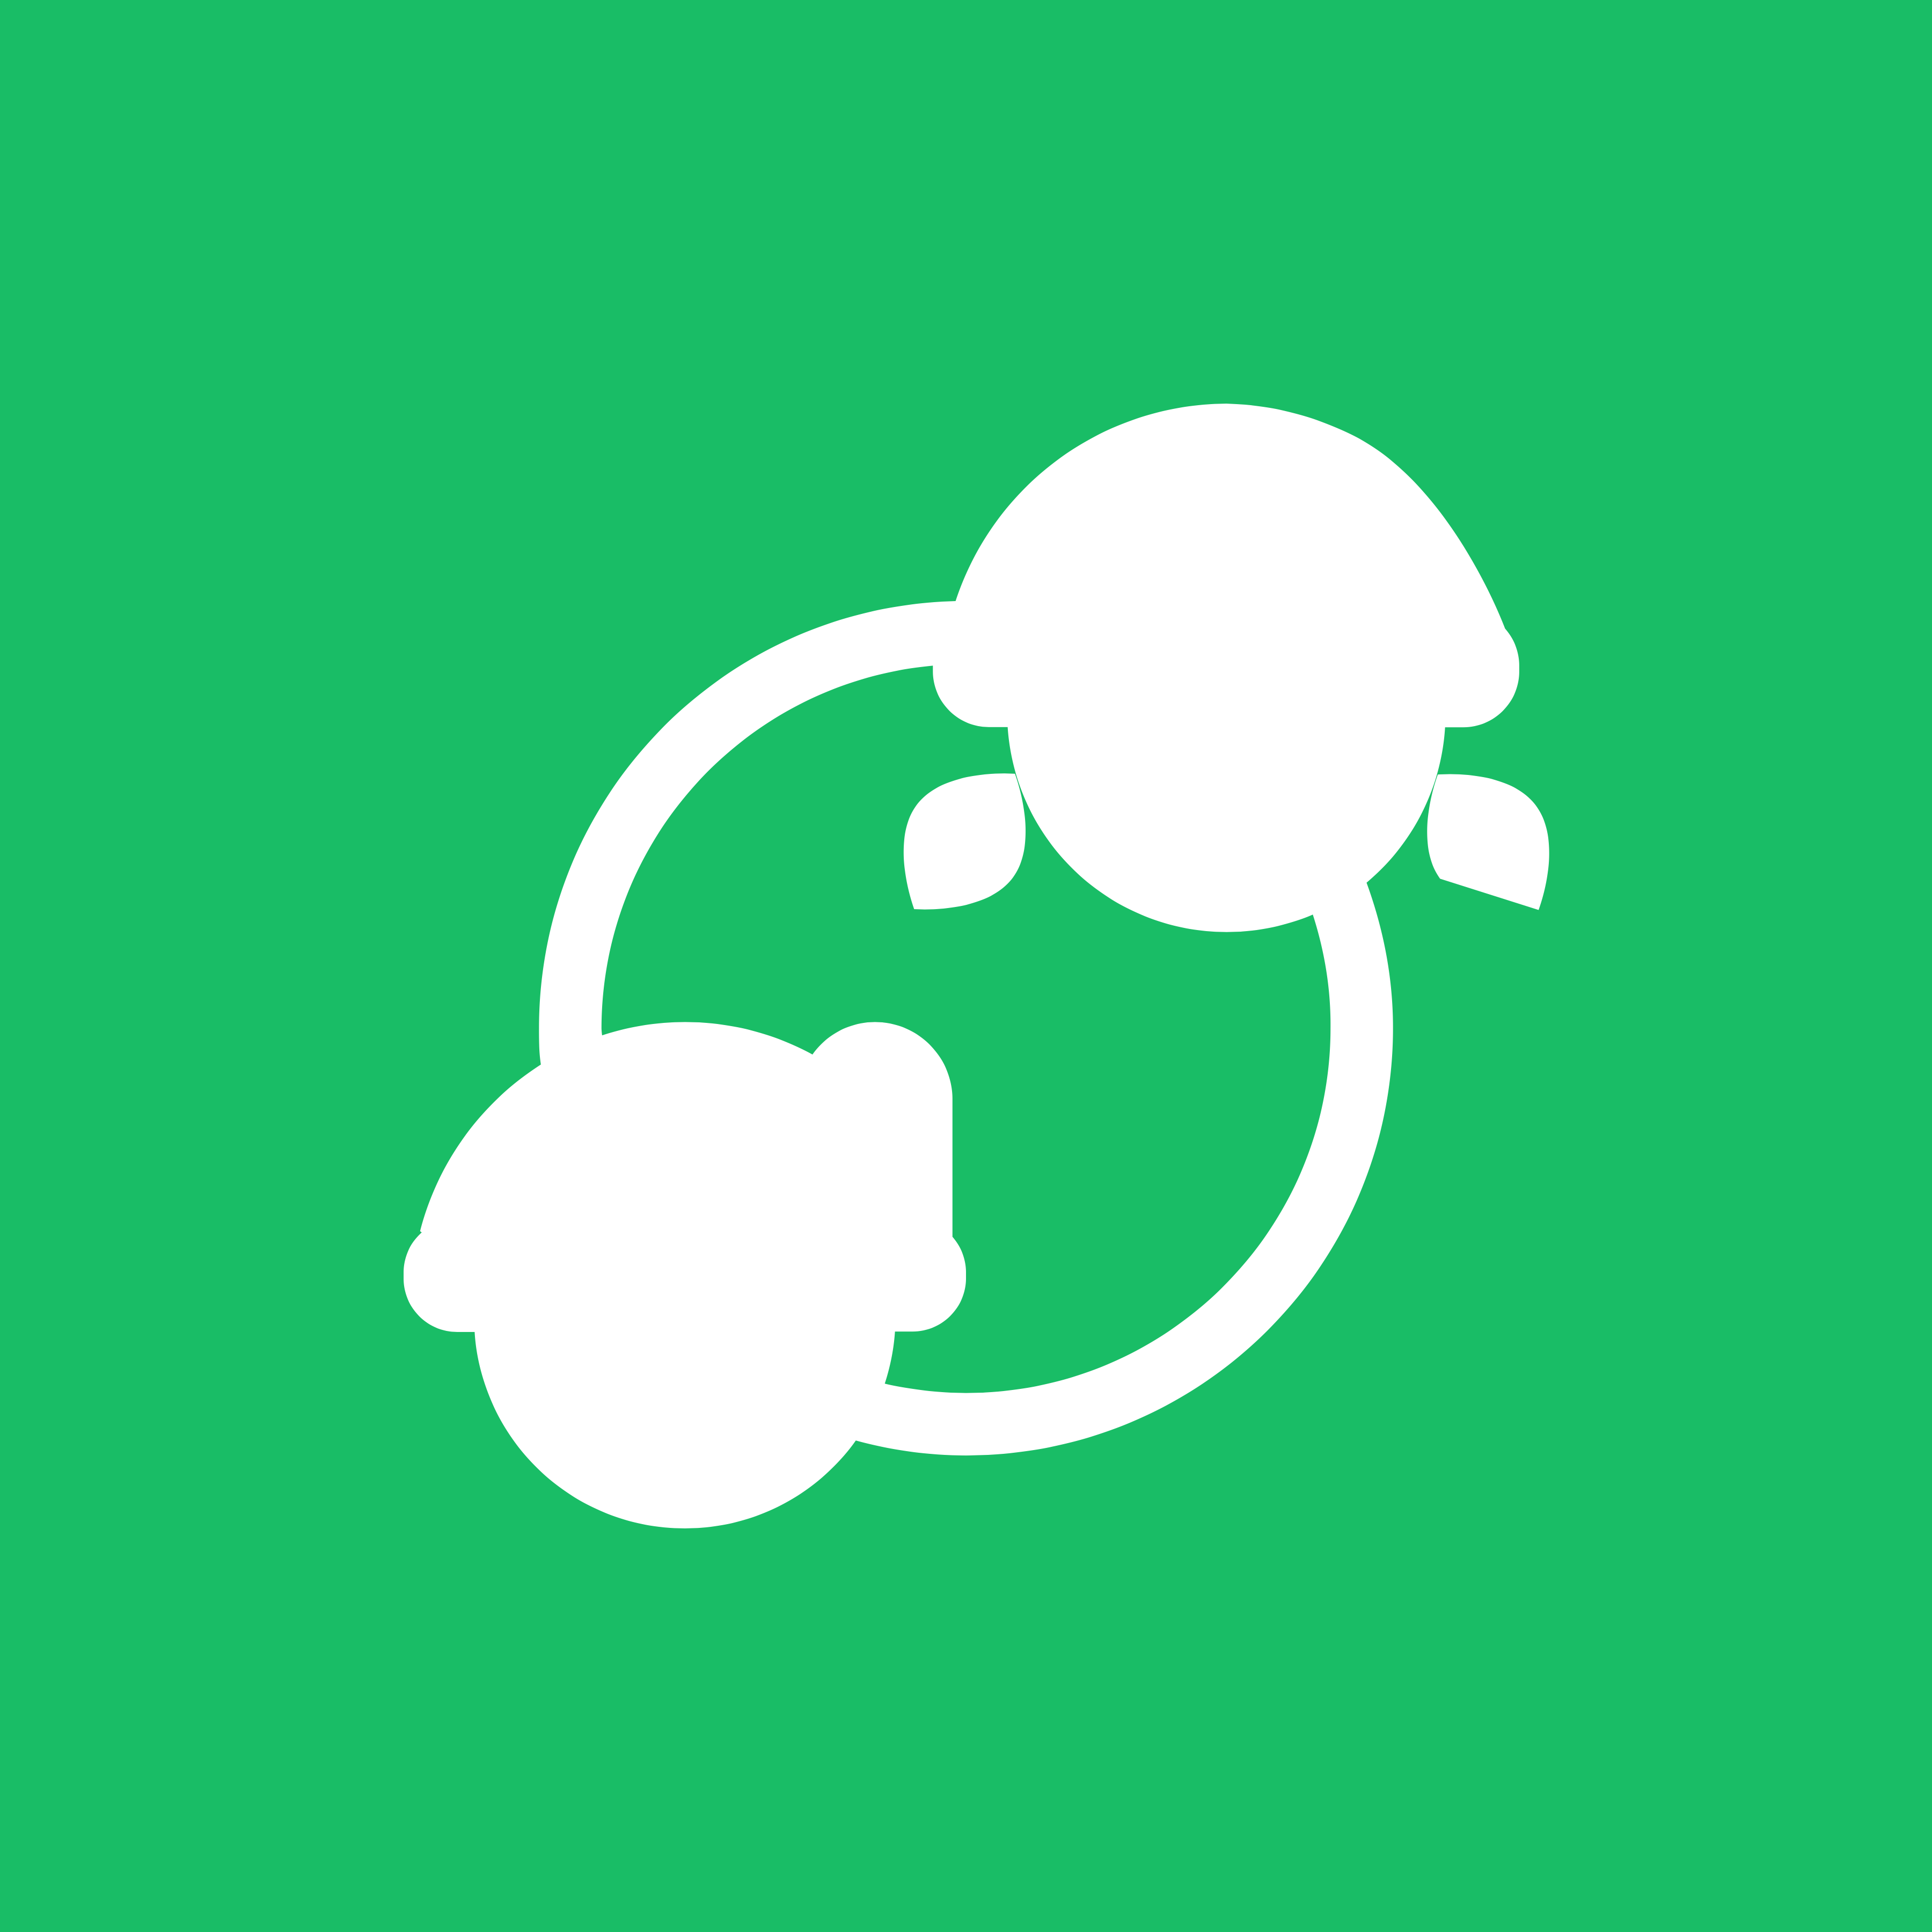 green and white symbol. a circle with a girl and a boy connected. symbolizing socialization or social circles.